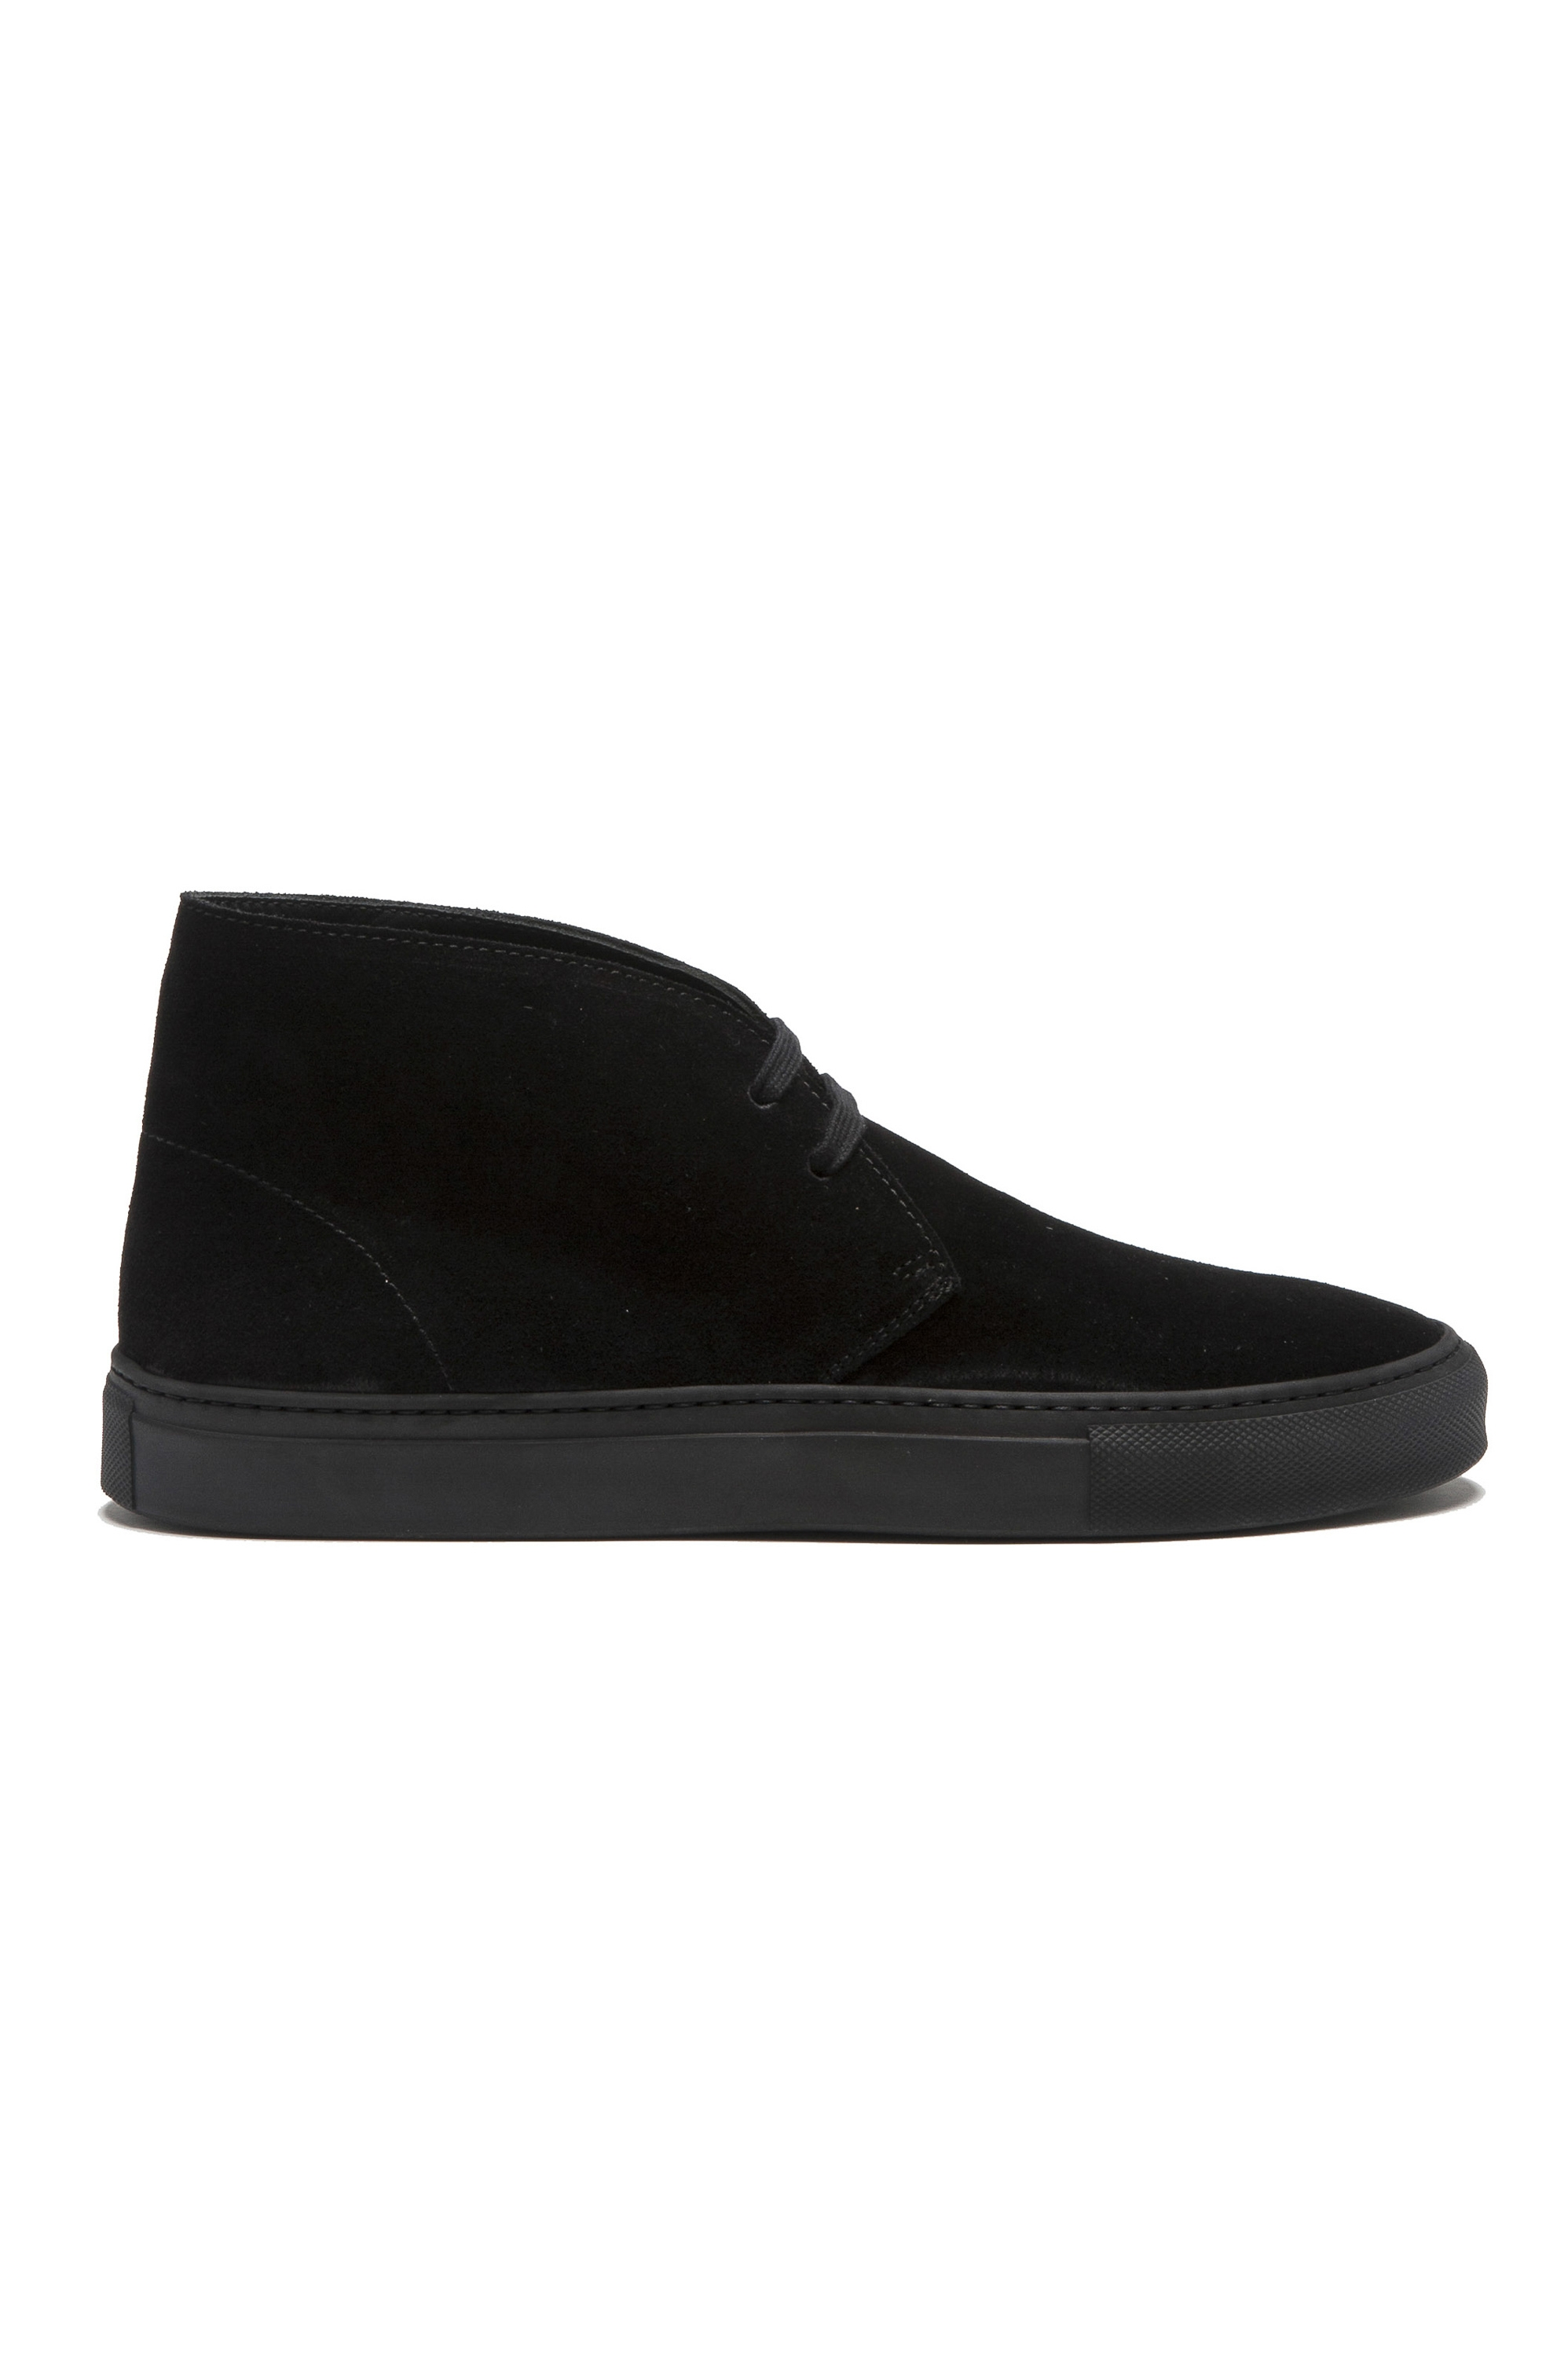 SBU 01520 Chukka boots in black suede calfskin leather 01